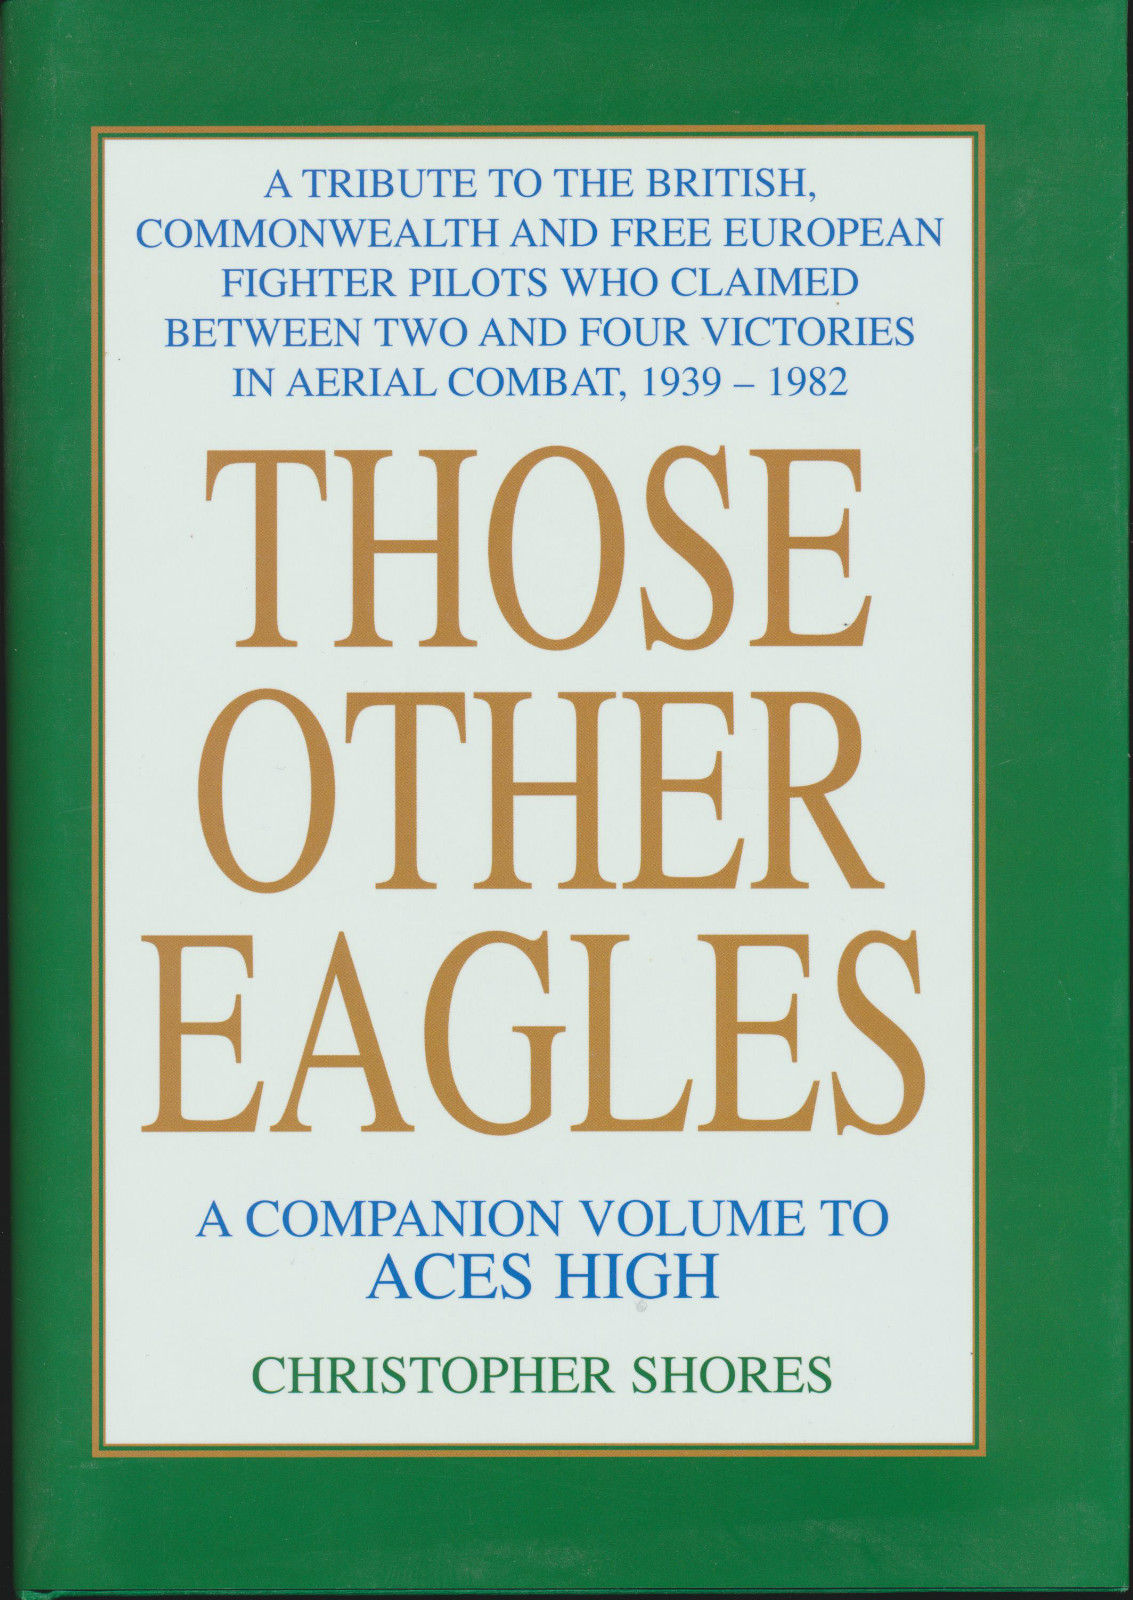 Those Other Eagles